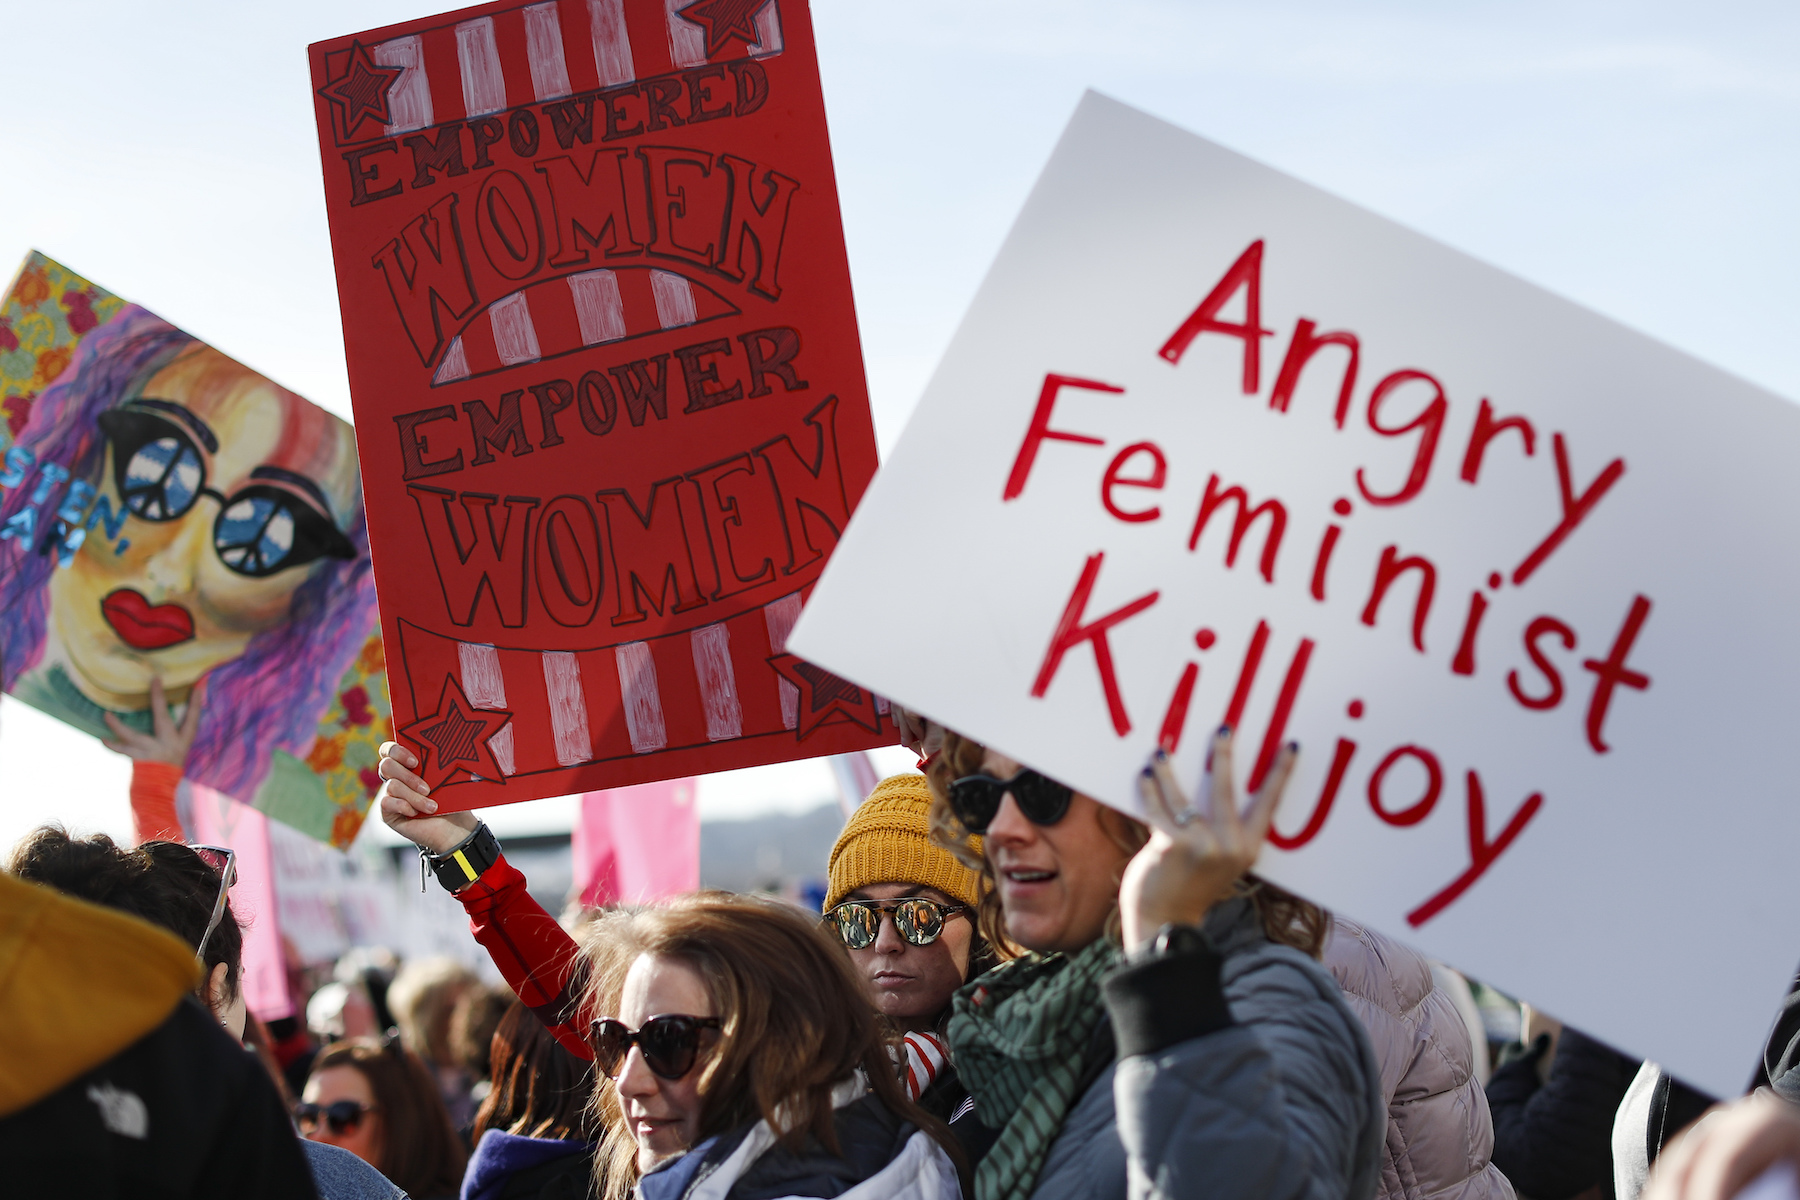 <div class='meta'><div class='origin-logo' data-origin='AP'></div><span class='caption-text' data-credit='AP Photo/John Minchillo'>Protestors gather to participate in a Women's March highlighting demands for equal rights and equality for women, Saturday, Jan. 20, 2018, in Cincinnati.</span></div>